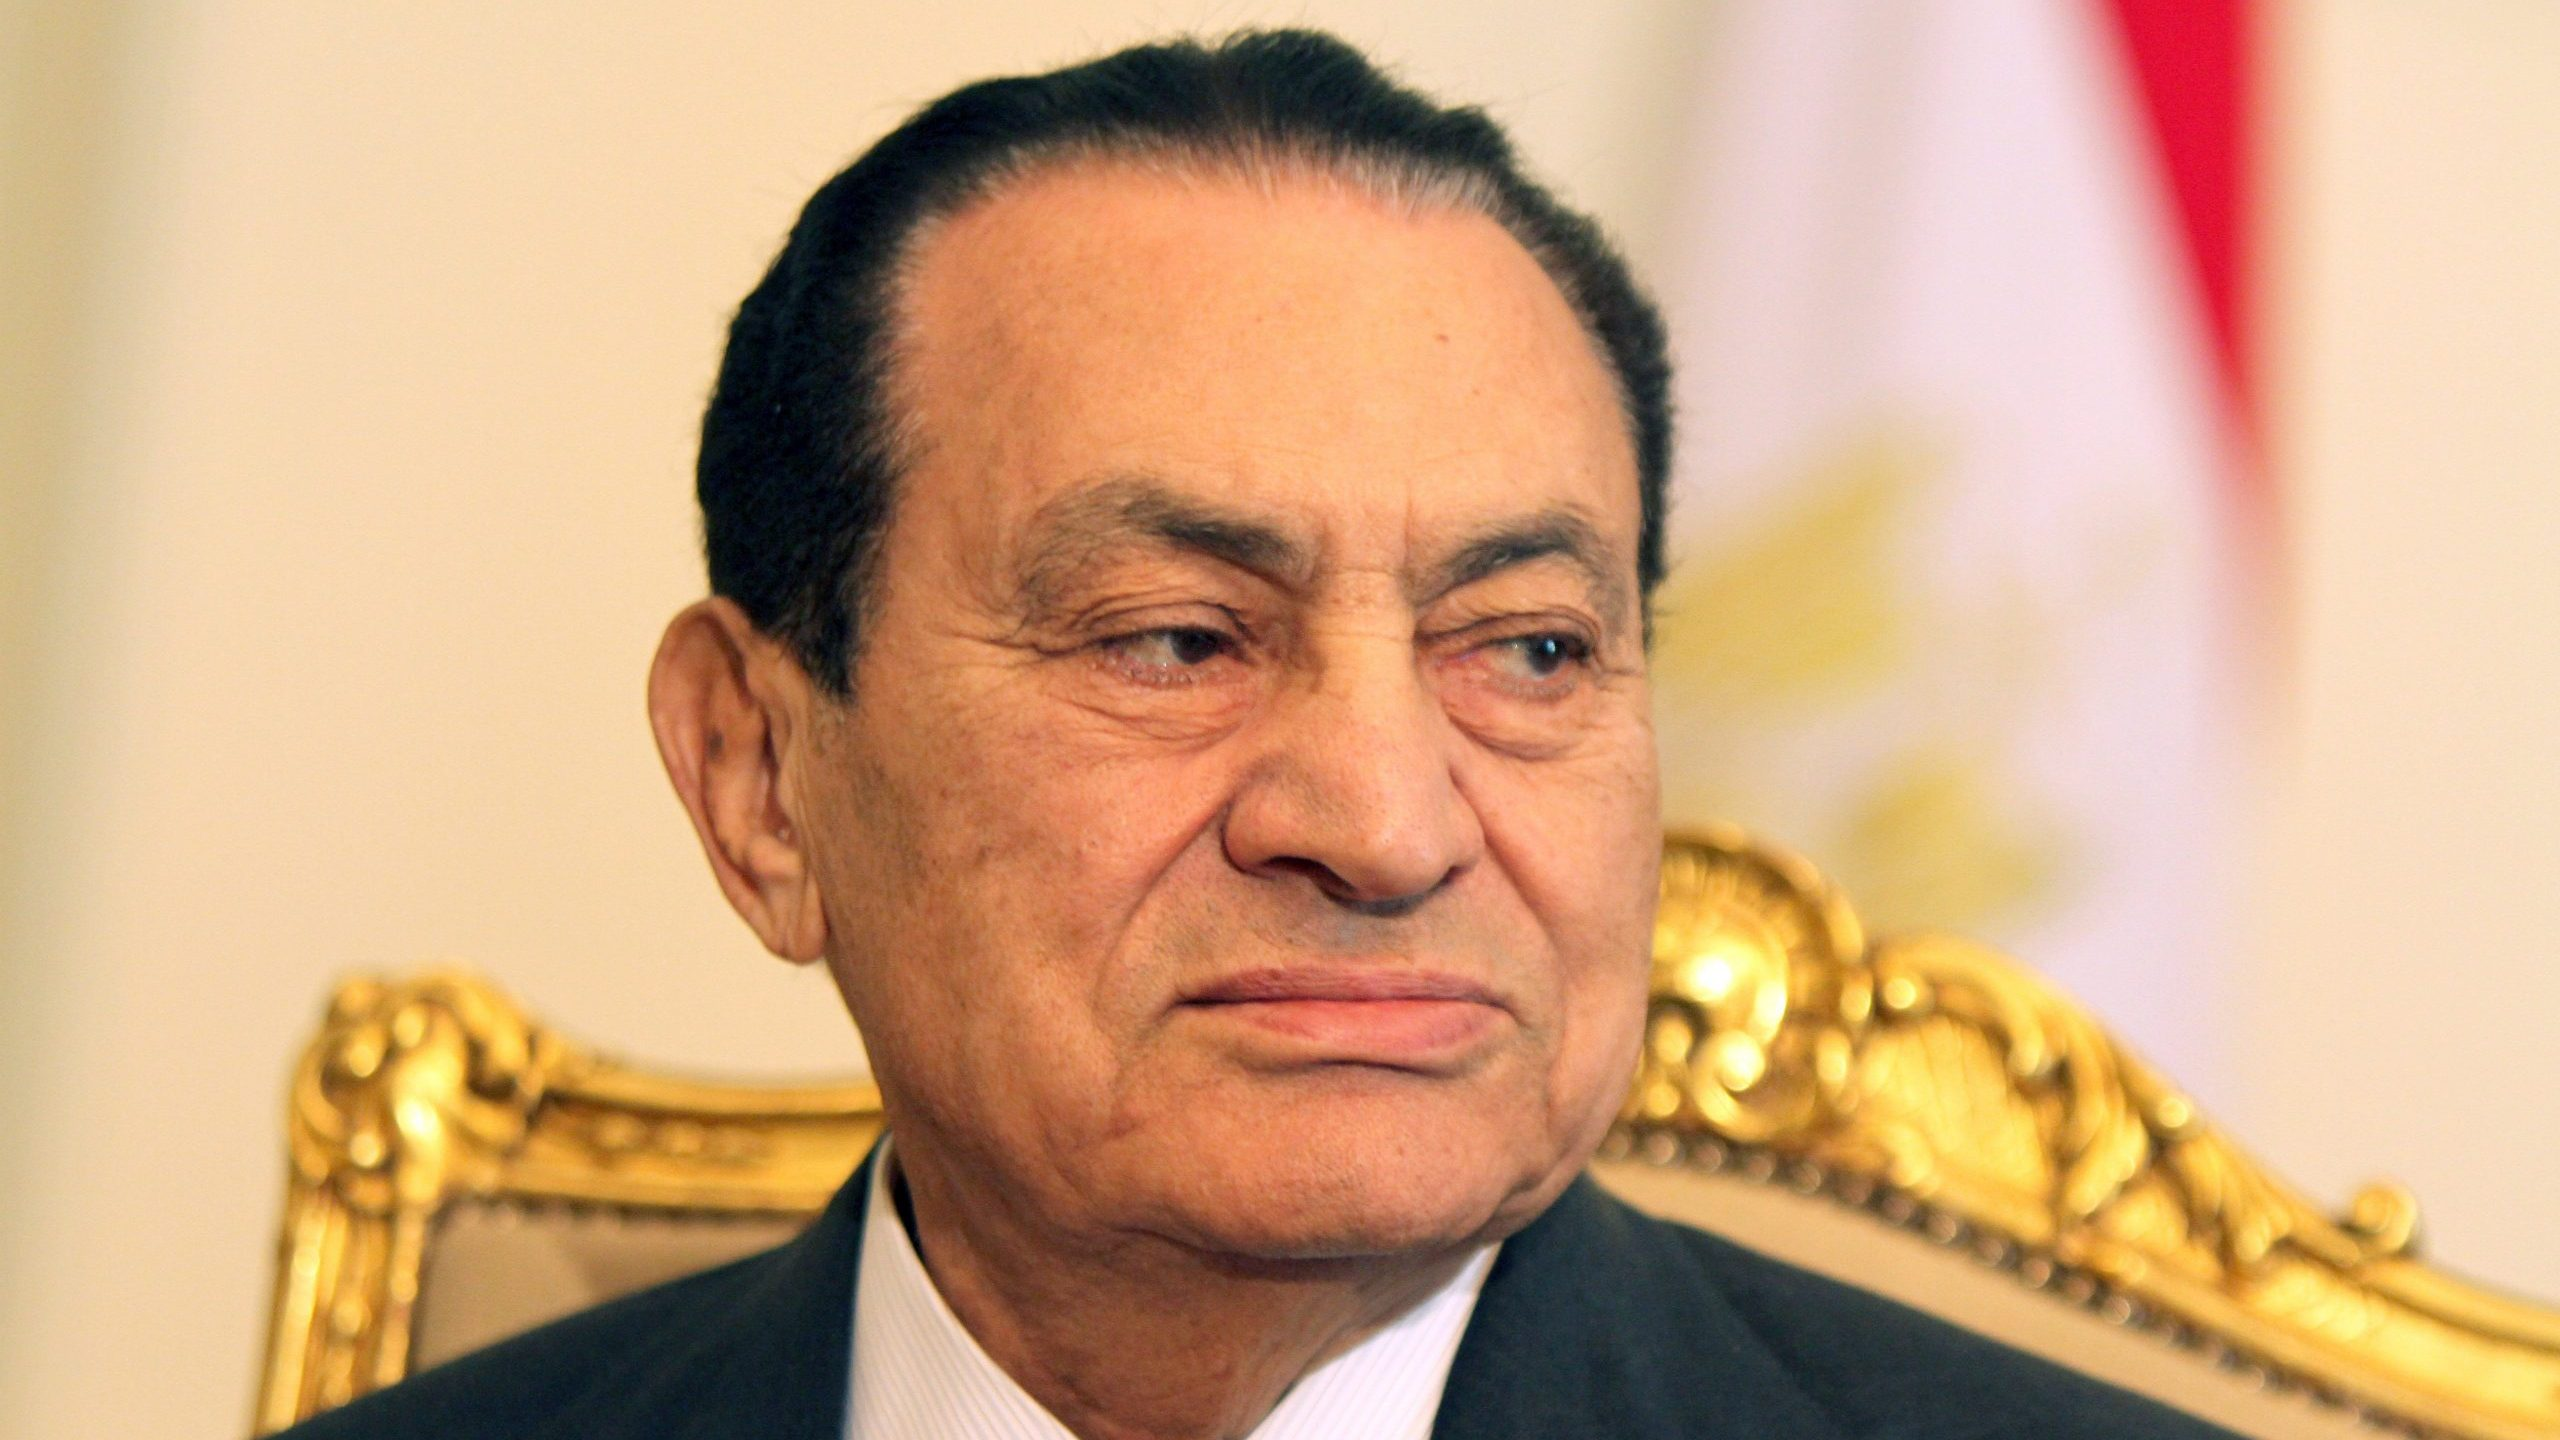 Egyptian President Hosni Mubarak meets with Emirates Foreign Minister Sheikh Abdullah bin Zayed al-Nahayan (unseen) in Cairo on February 8, 2011, as protests in the city continue for the 15th consecutive day calling for his resignation and an end to his regime. (Credit: KHALED DESOUKI/AFP via Getty Images)